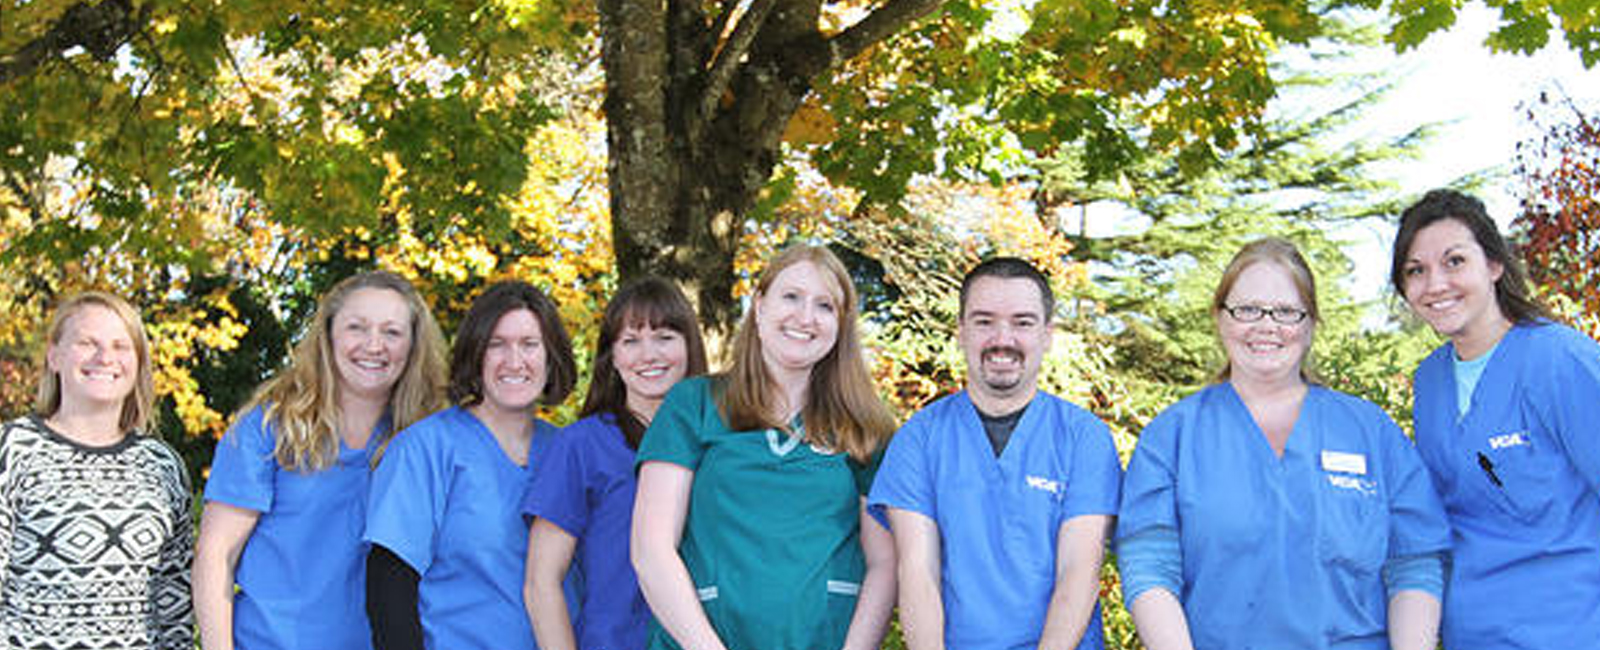 Homepage Team Picture of VCA West  Linn Animal Hospital